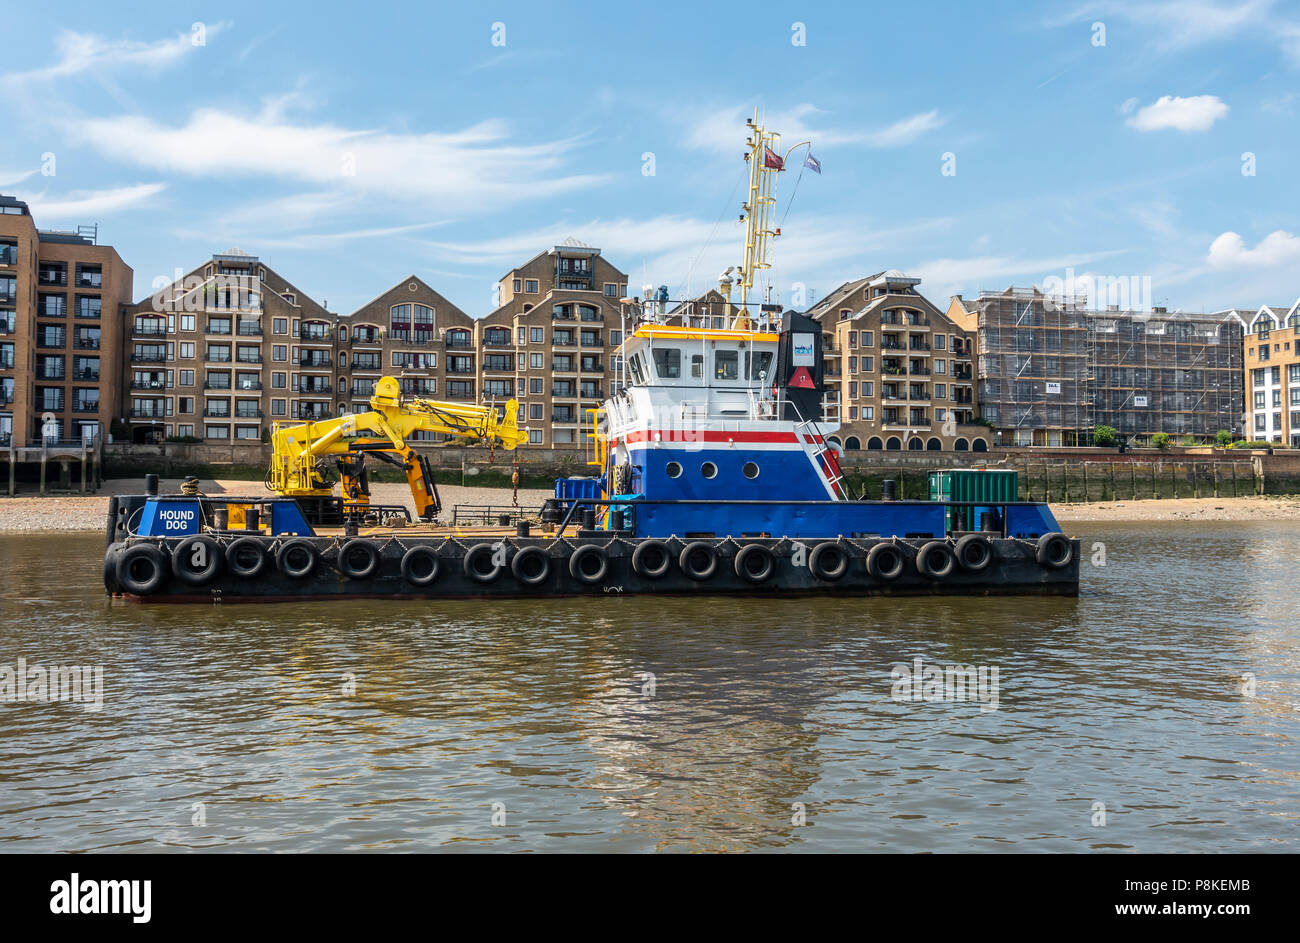 MPV Hound Dog, a multi-purpose vessel with a marine knucklebone crane, two winches, capstan, a towing hook and a bow roller. Docklands, London. - Stock Image